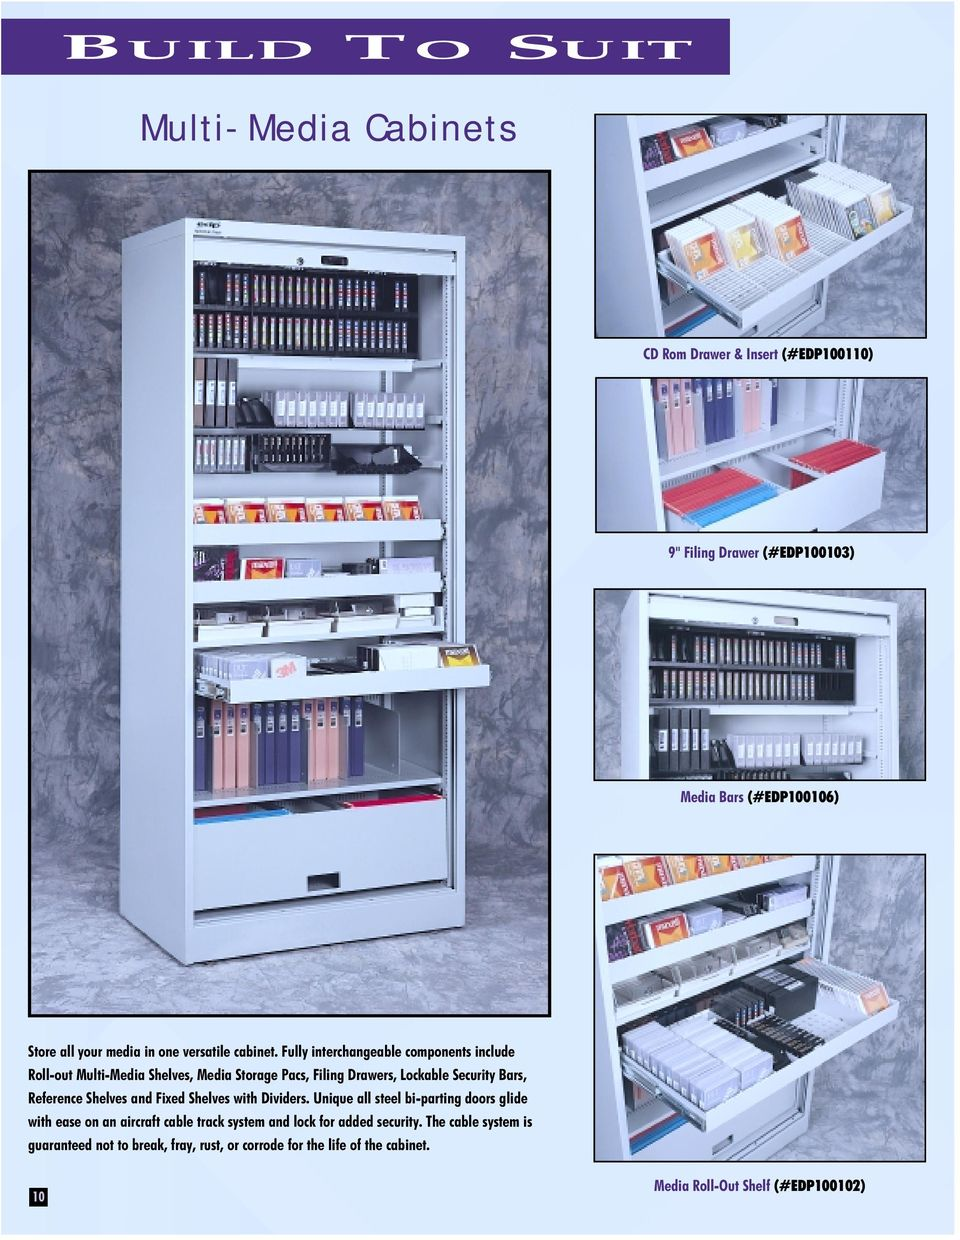 Fully interchangeable components include Roll-out Multi-Media Shelves, Media Storage Pacs, Filing Drawers, Lockable Security Bars, Reference Shelves